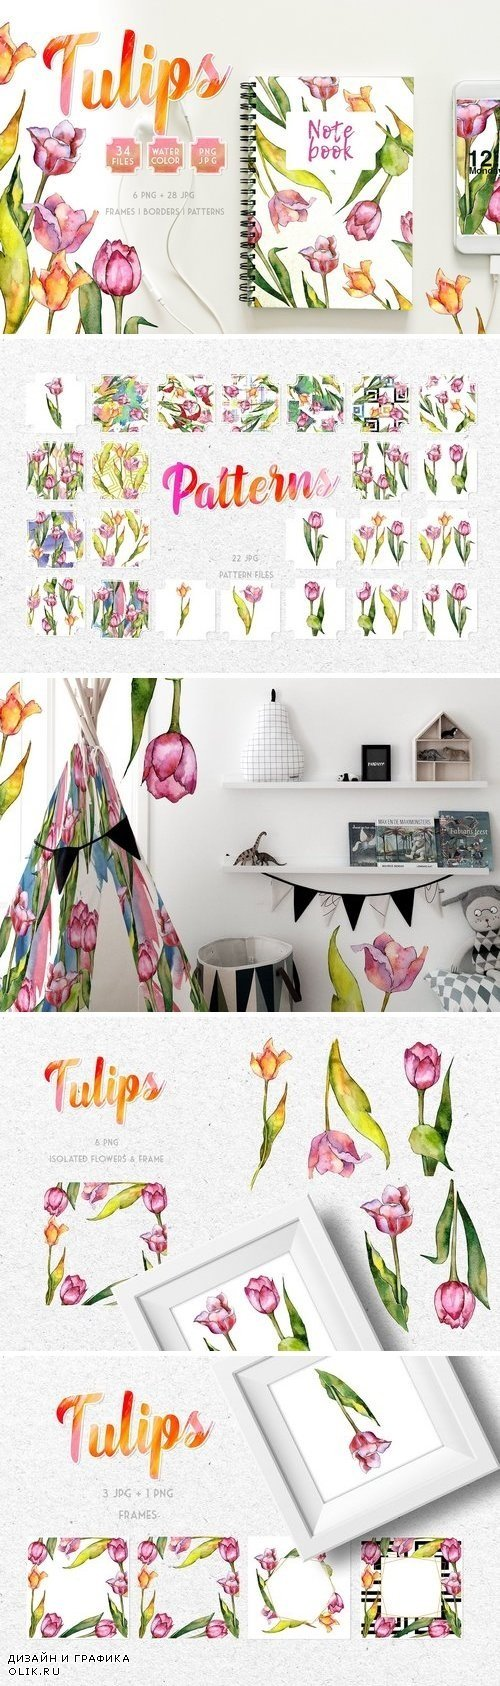 Tulips for Love Watercolor png 3357911